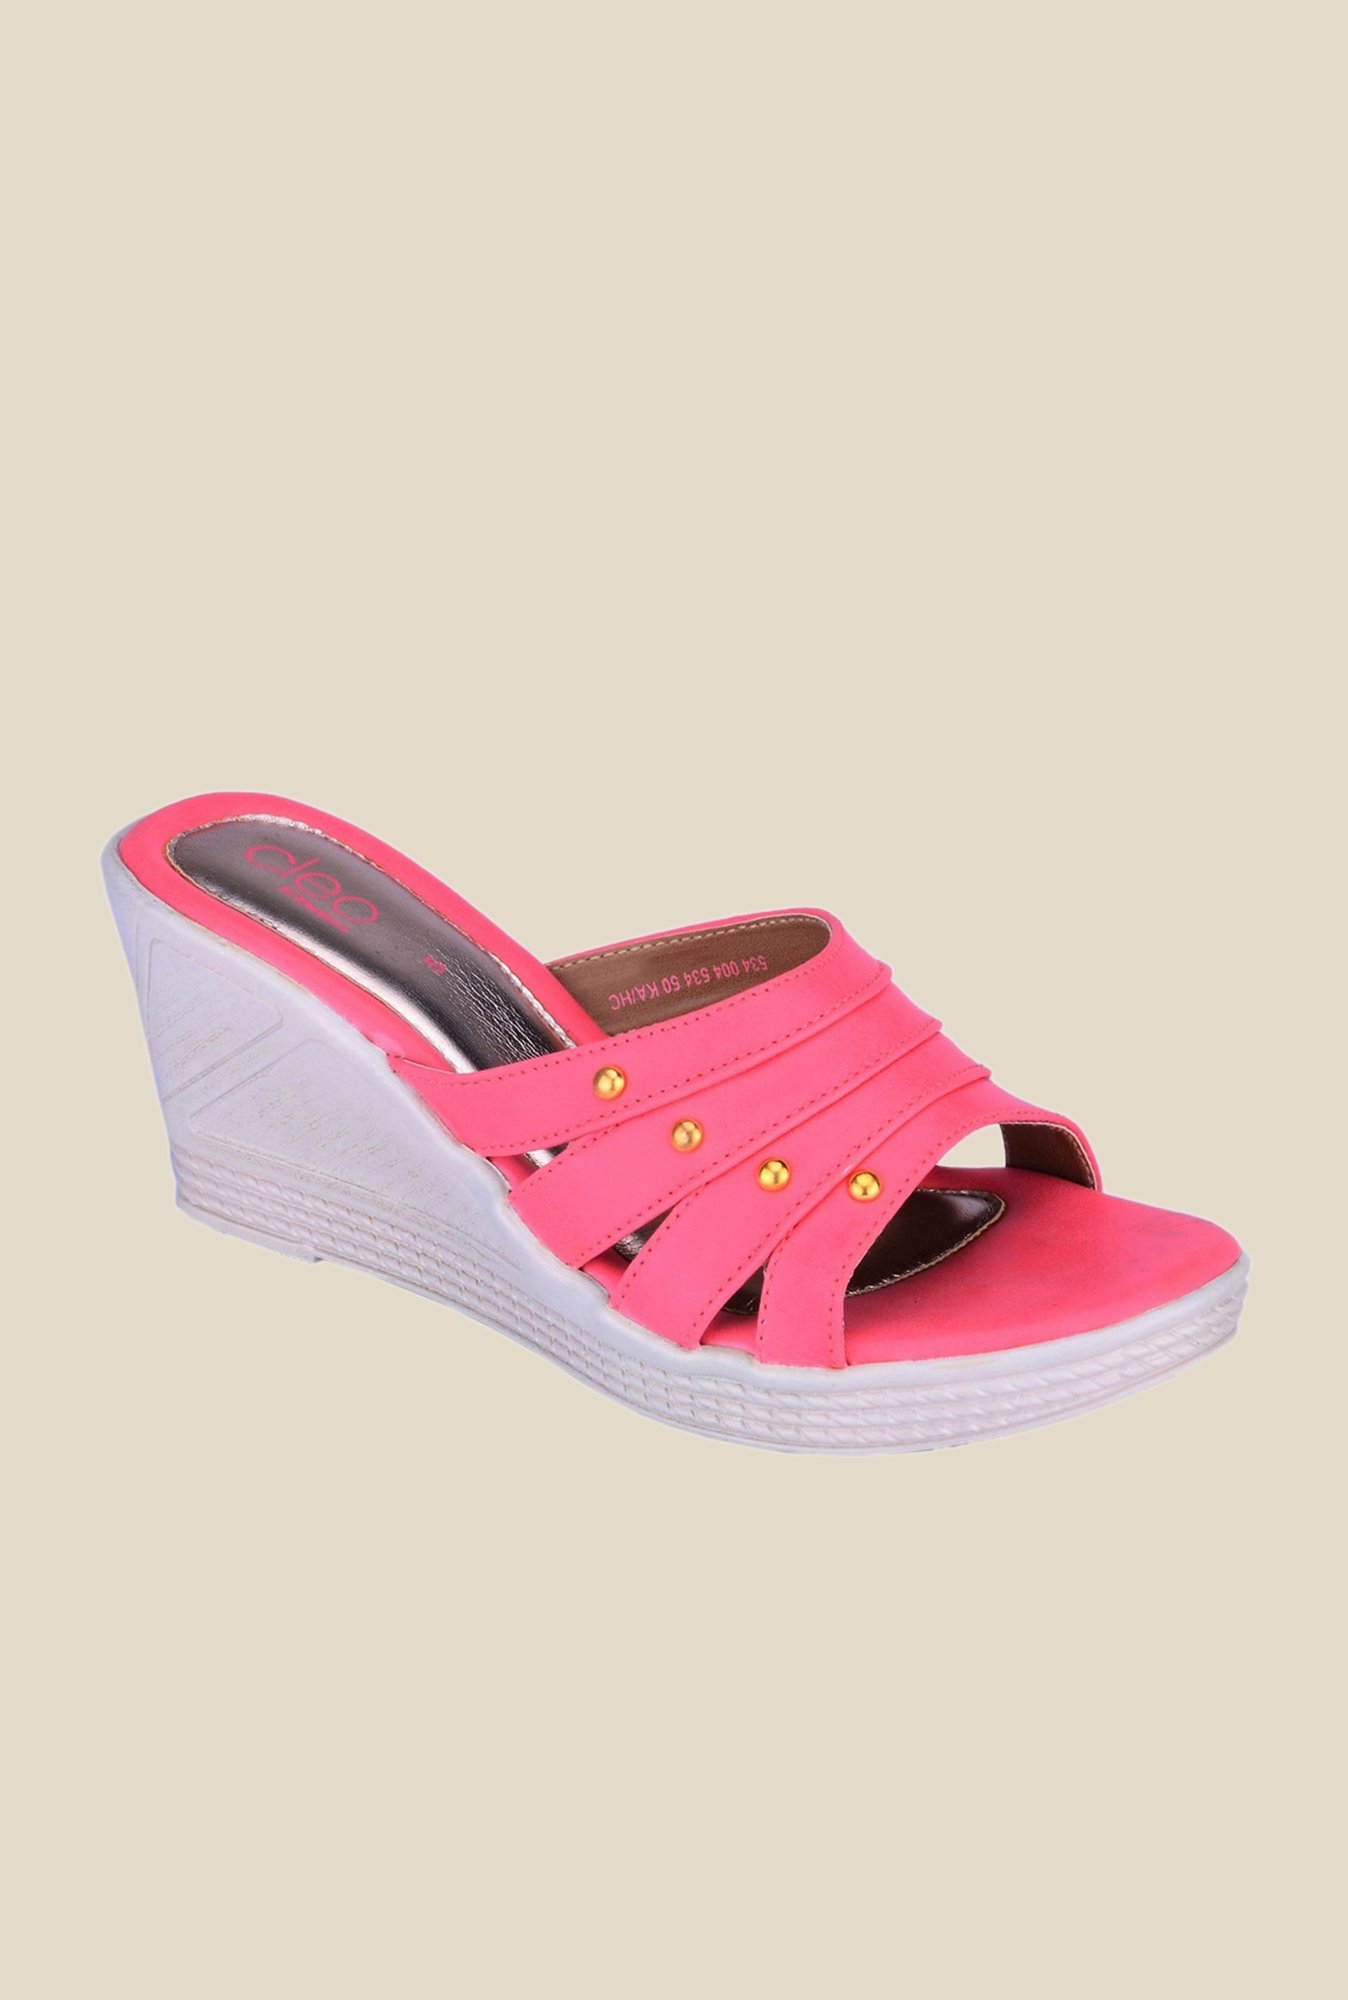 Khadim's Cleo Pink Wedge Heeled Sandals